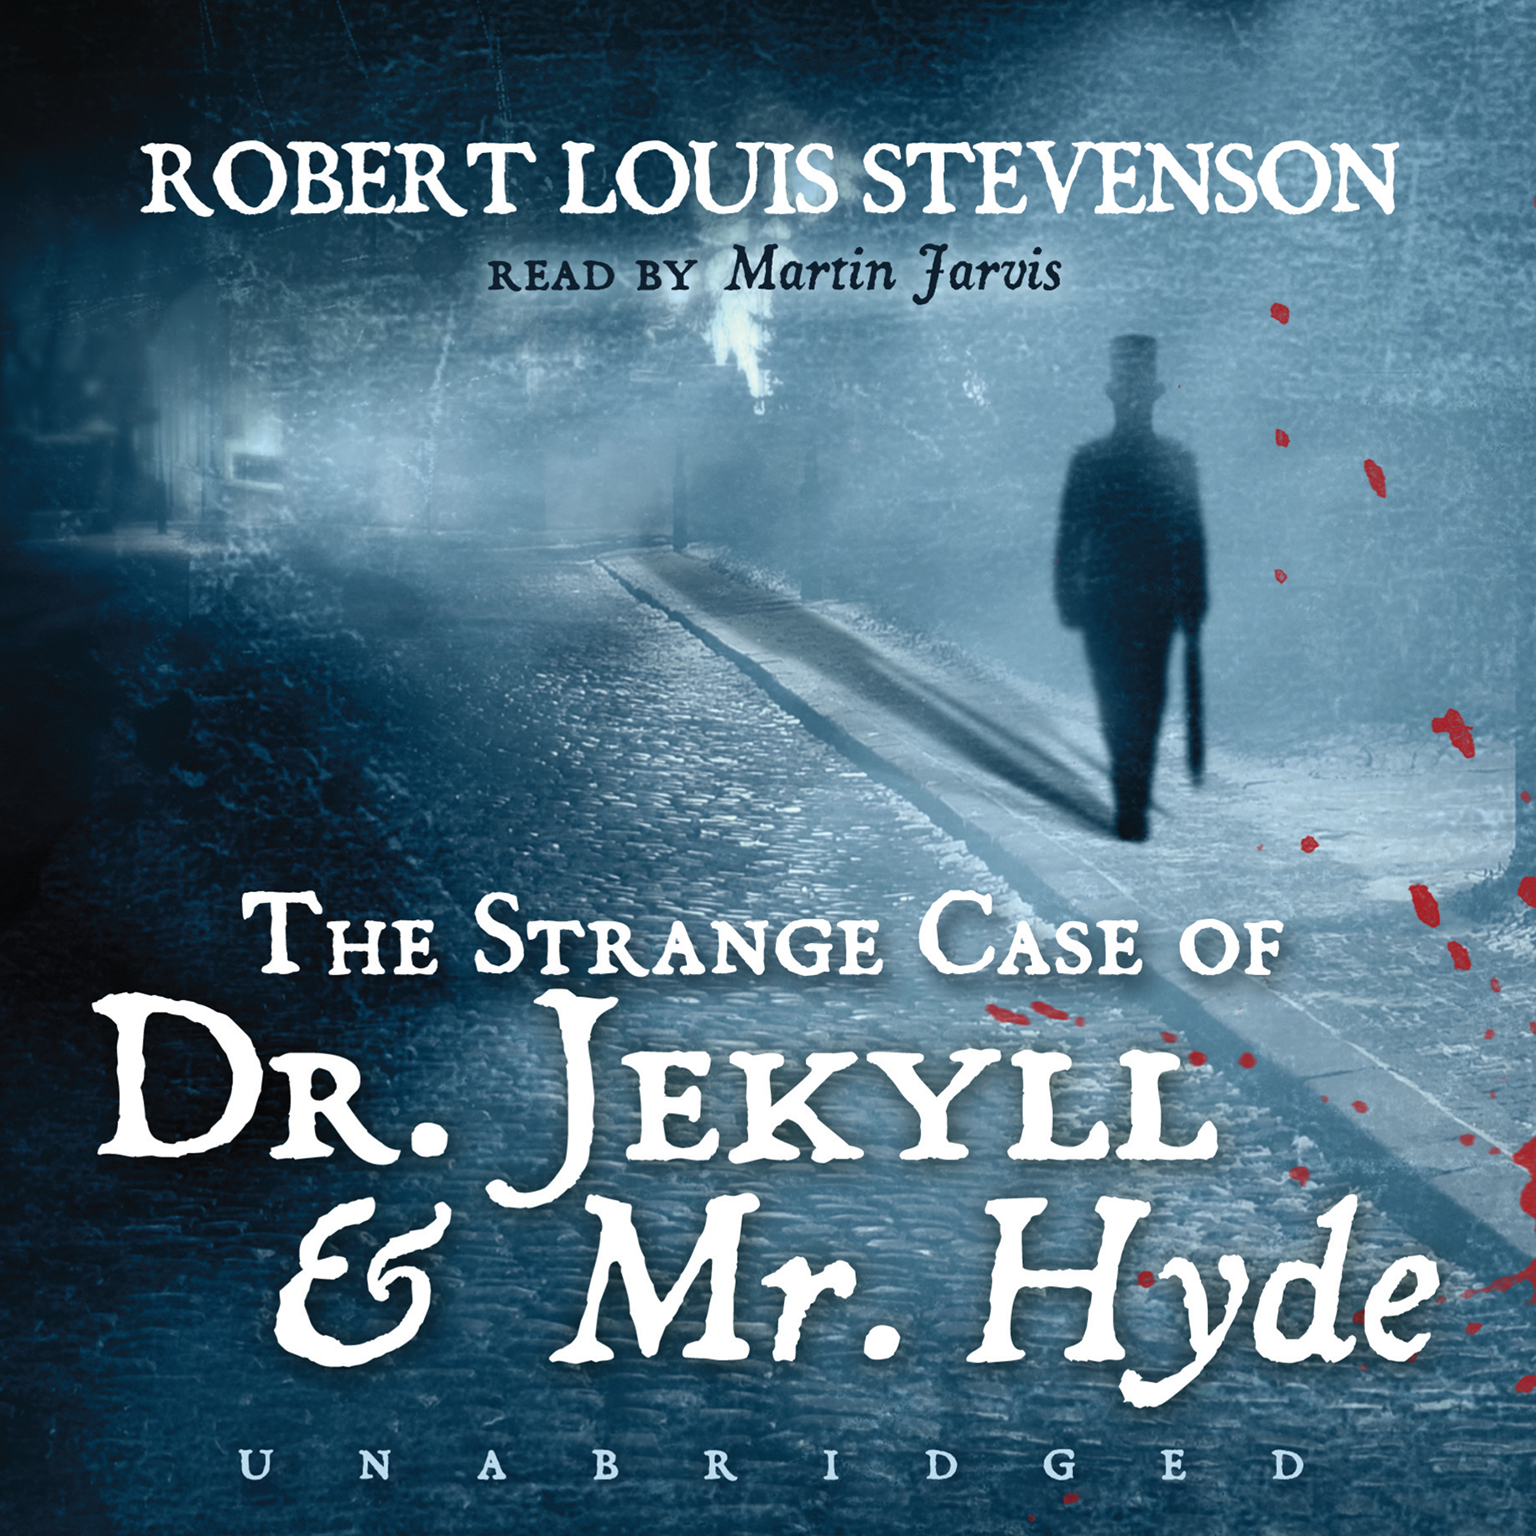 duality of human nature in macbeth and dr jekyll and mr hyde essay Stevenson's use of the concept of duality in dr jekyll and mr hyde 'dr jekyll and mr hyde' was written during the 19th century by robert louis stevenson it was written during a time where victorian society had a lot of strong moral values.